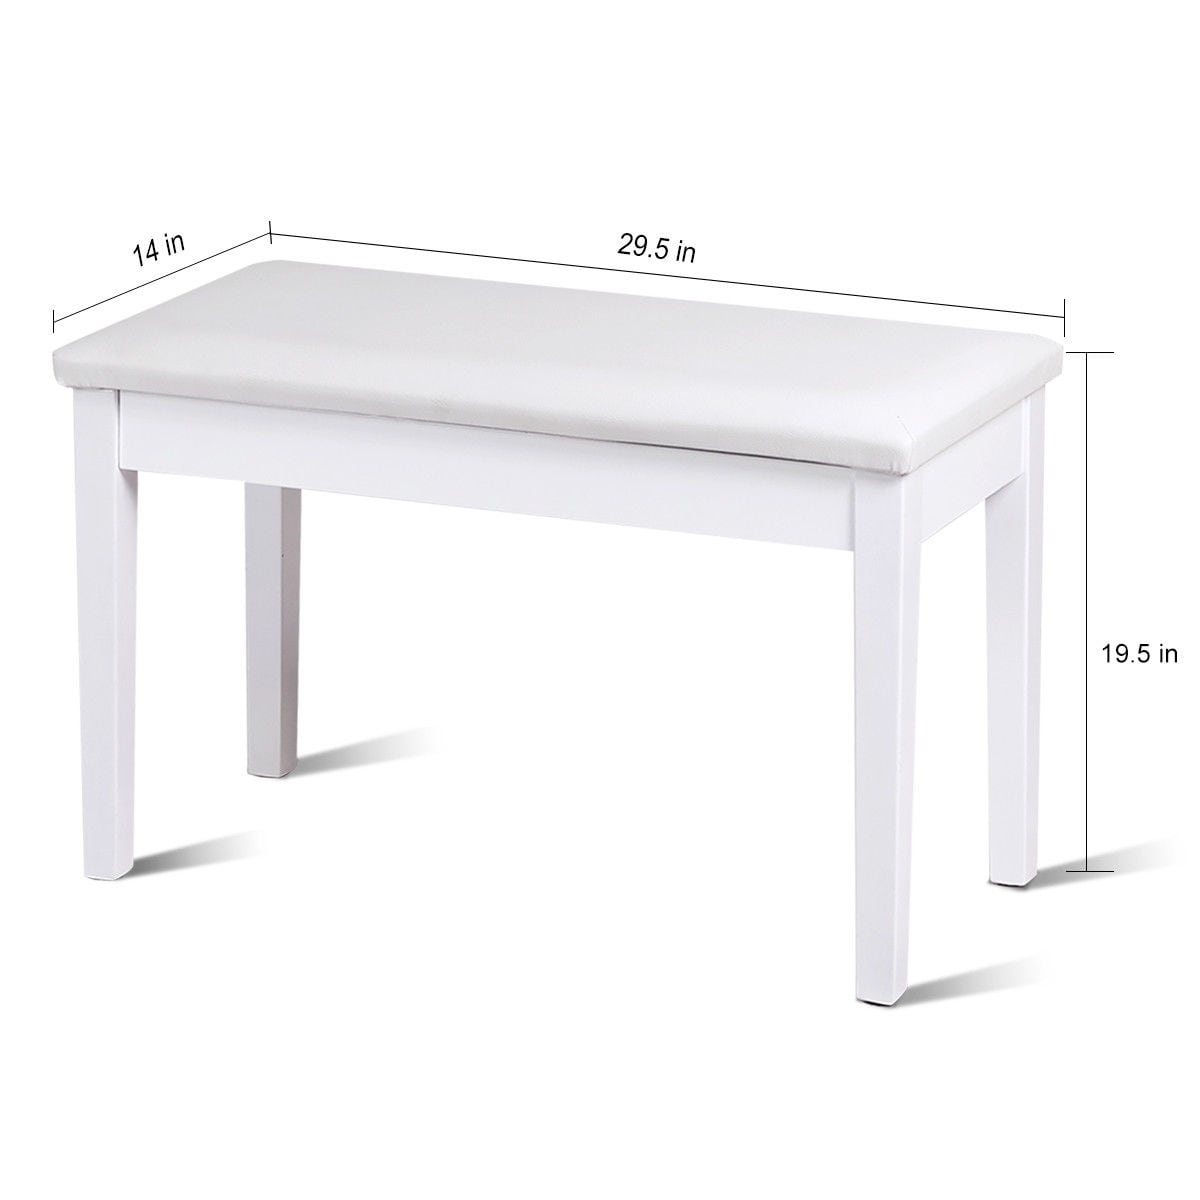 Stupendous Costway Solid Wood Pu Leather Piano Bench Padded Double Duet Keyboard Seat Storage White Caraccident5 Cool Chair Designs And Ideas Caraccident5Info